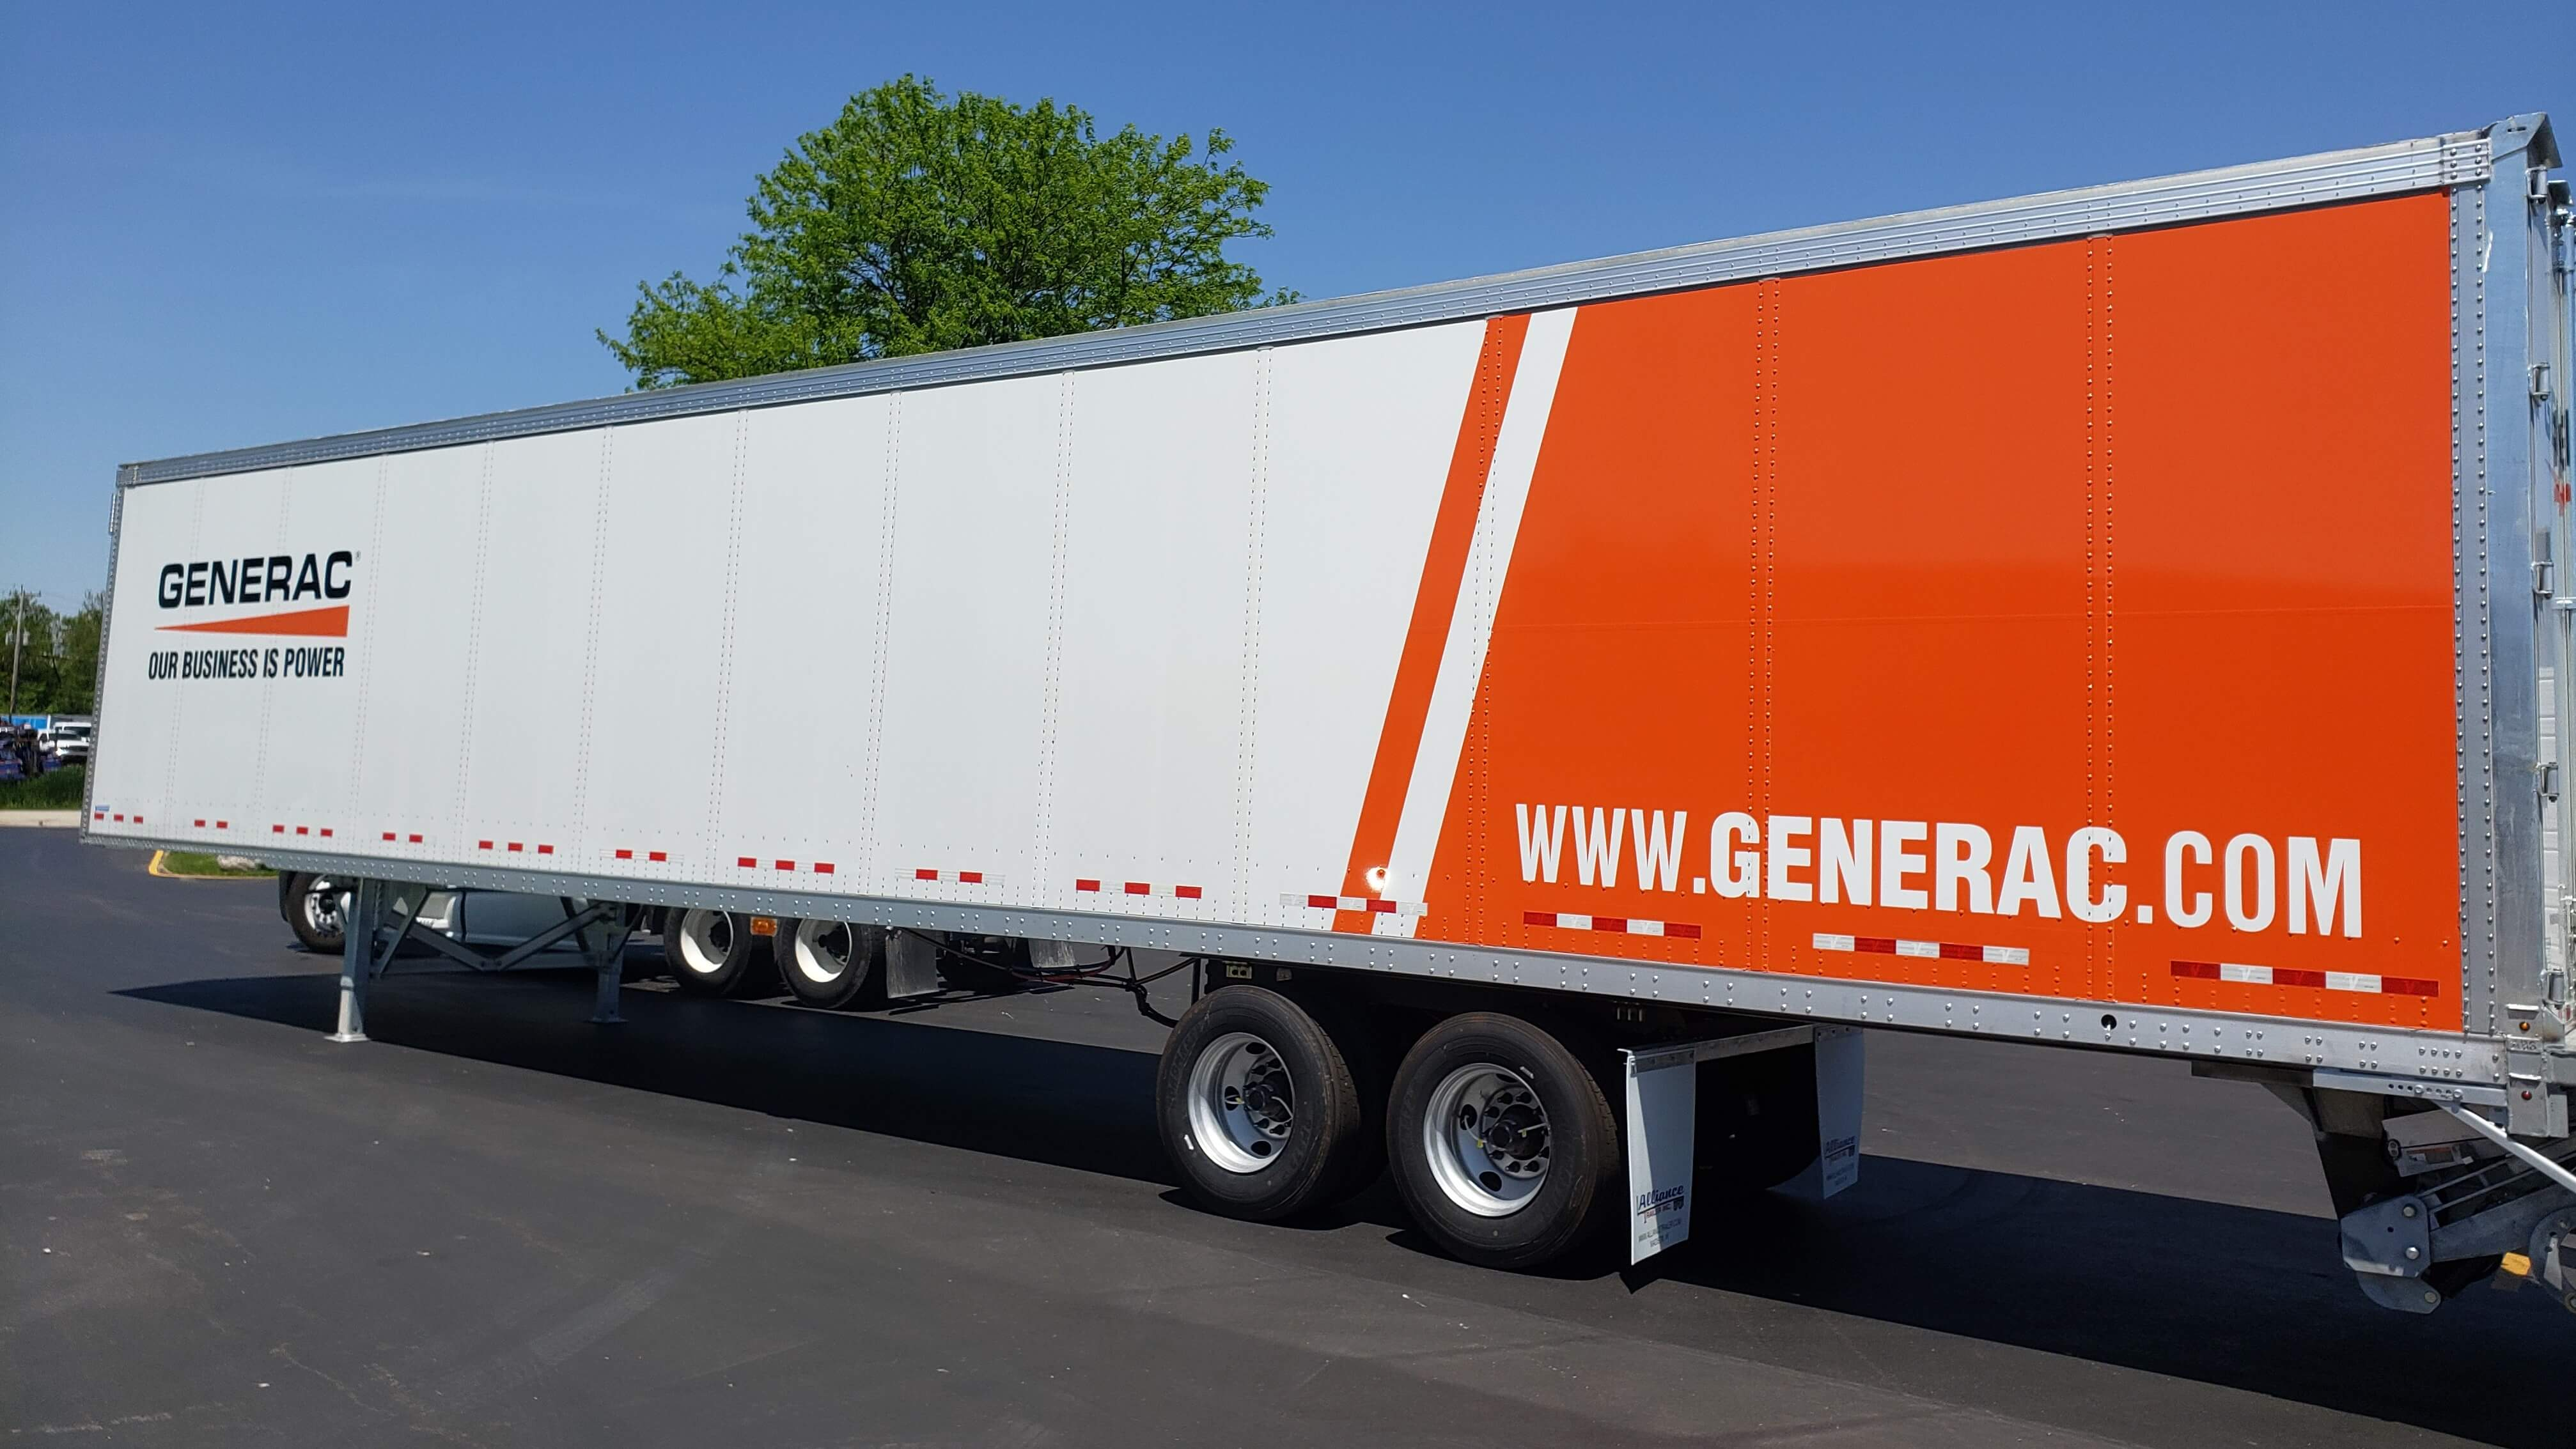 Generac Trailer wrap from the rear, with orange decals, website, and company branding